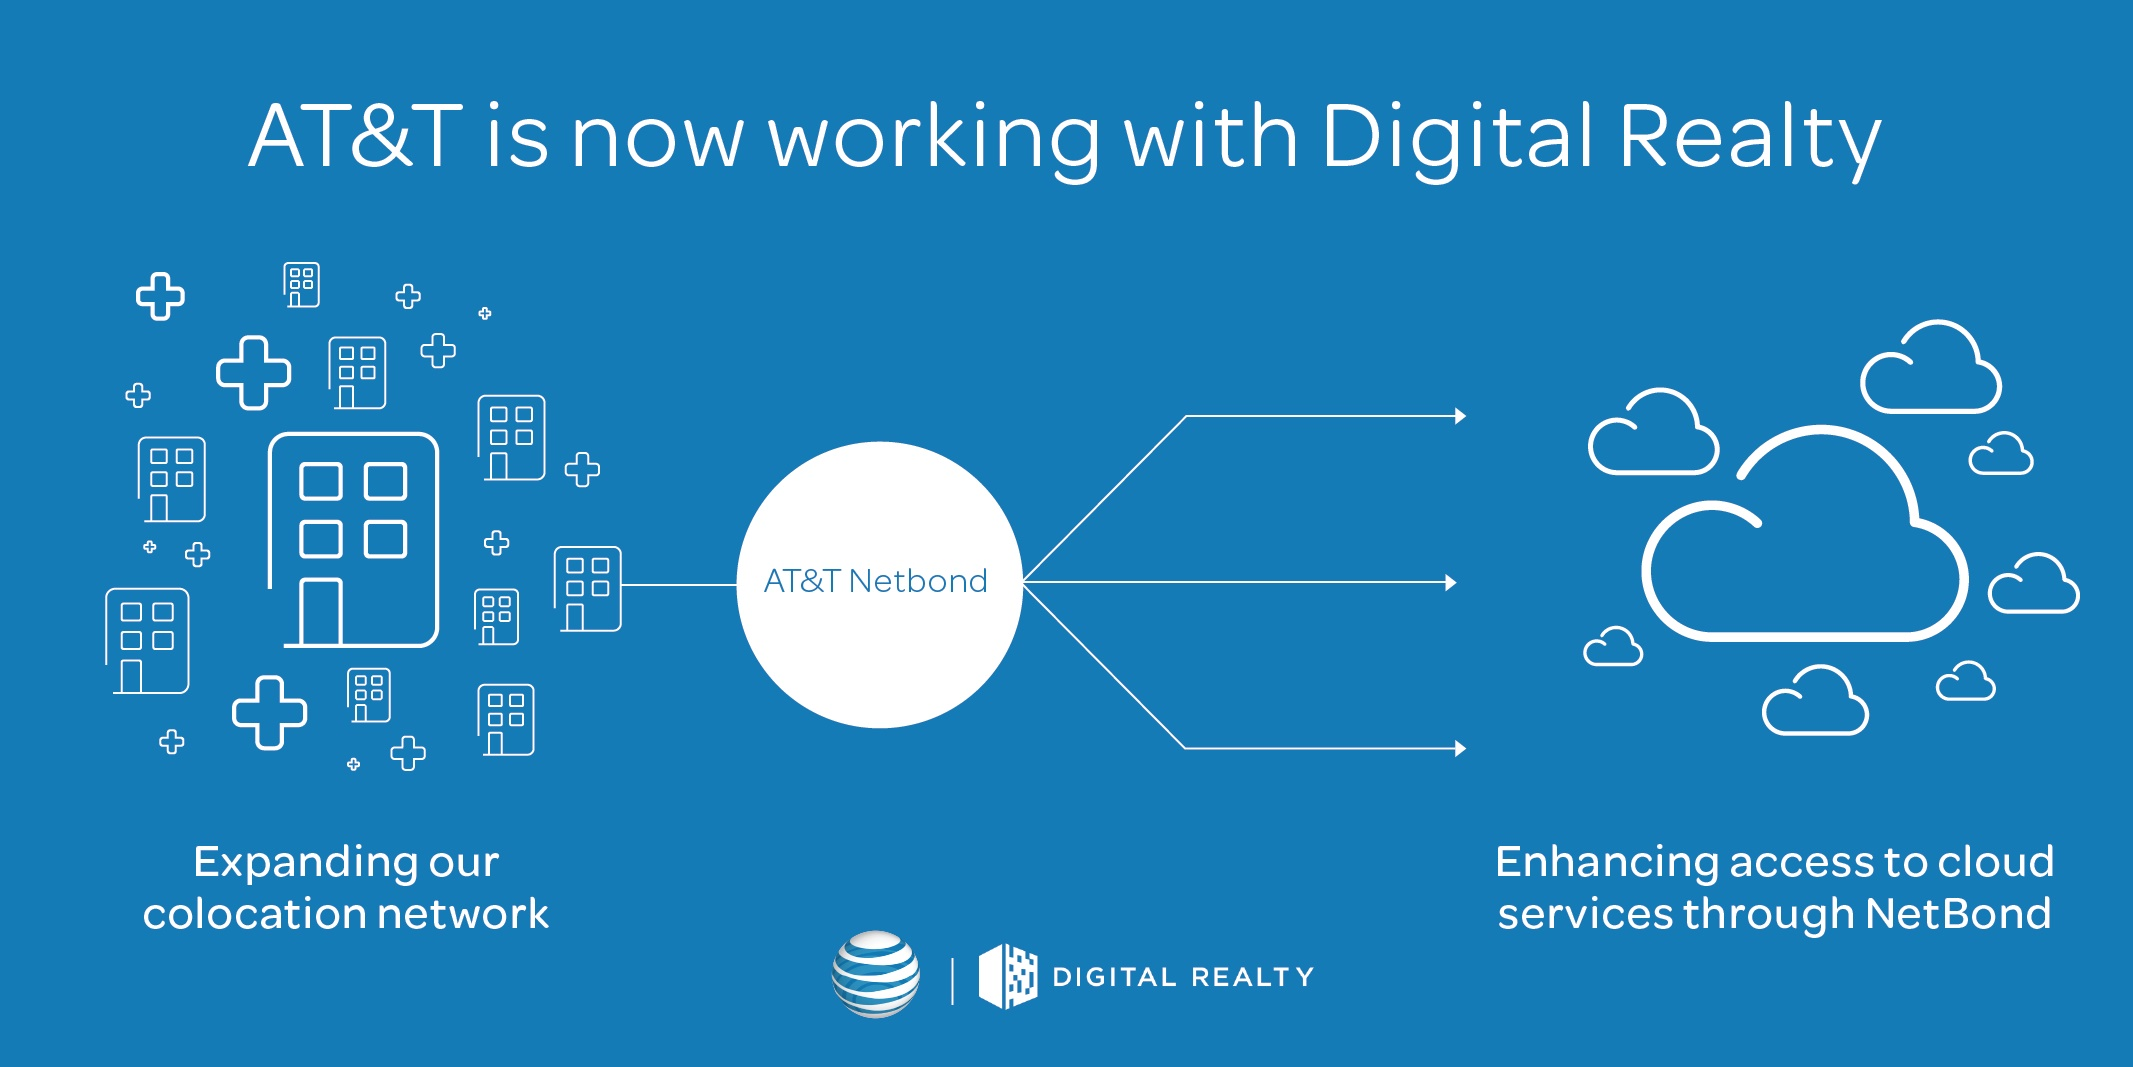 At&t Quote At&t Boosts Colocation Footprintjoining Forces With Digital